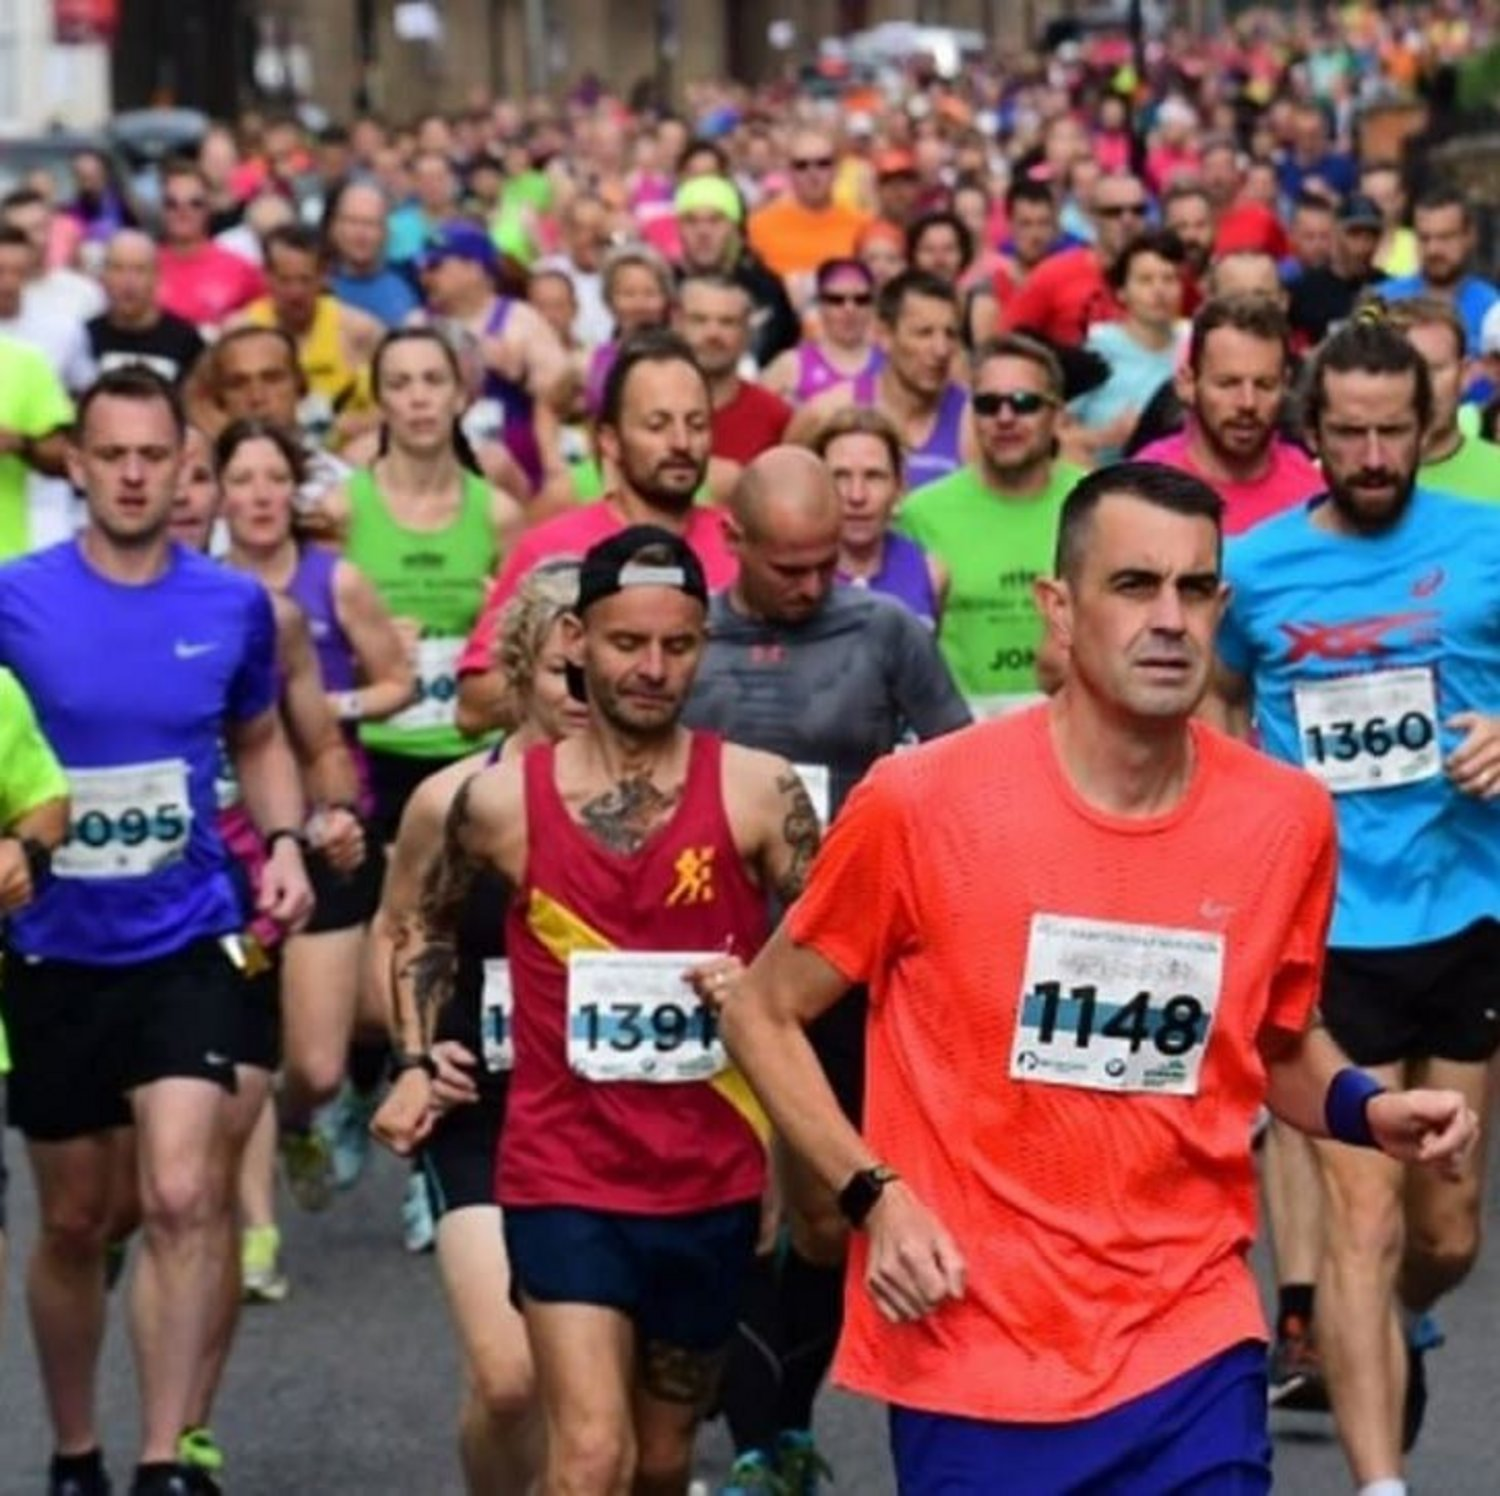 Northampton Half Marathon 2020 | 27 September 2020